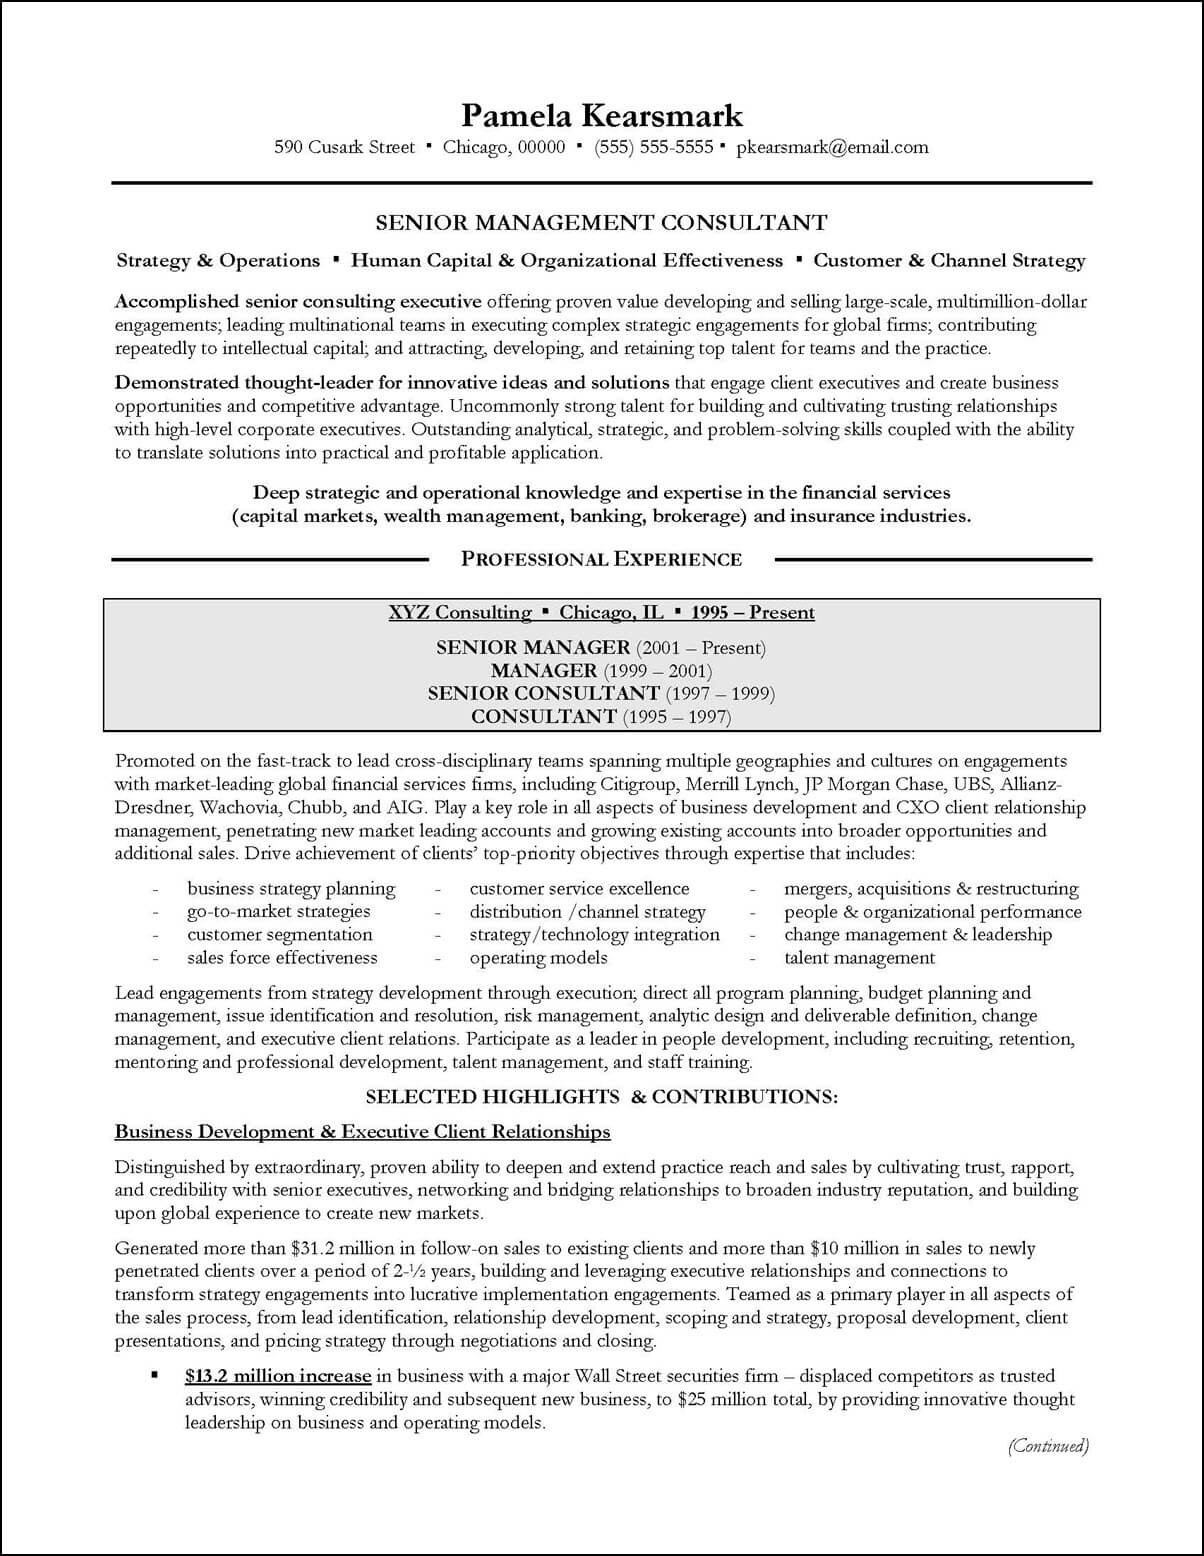 management consulting resume example page 1 - Business Consultant Resume Sample